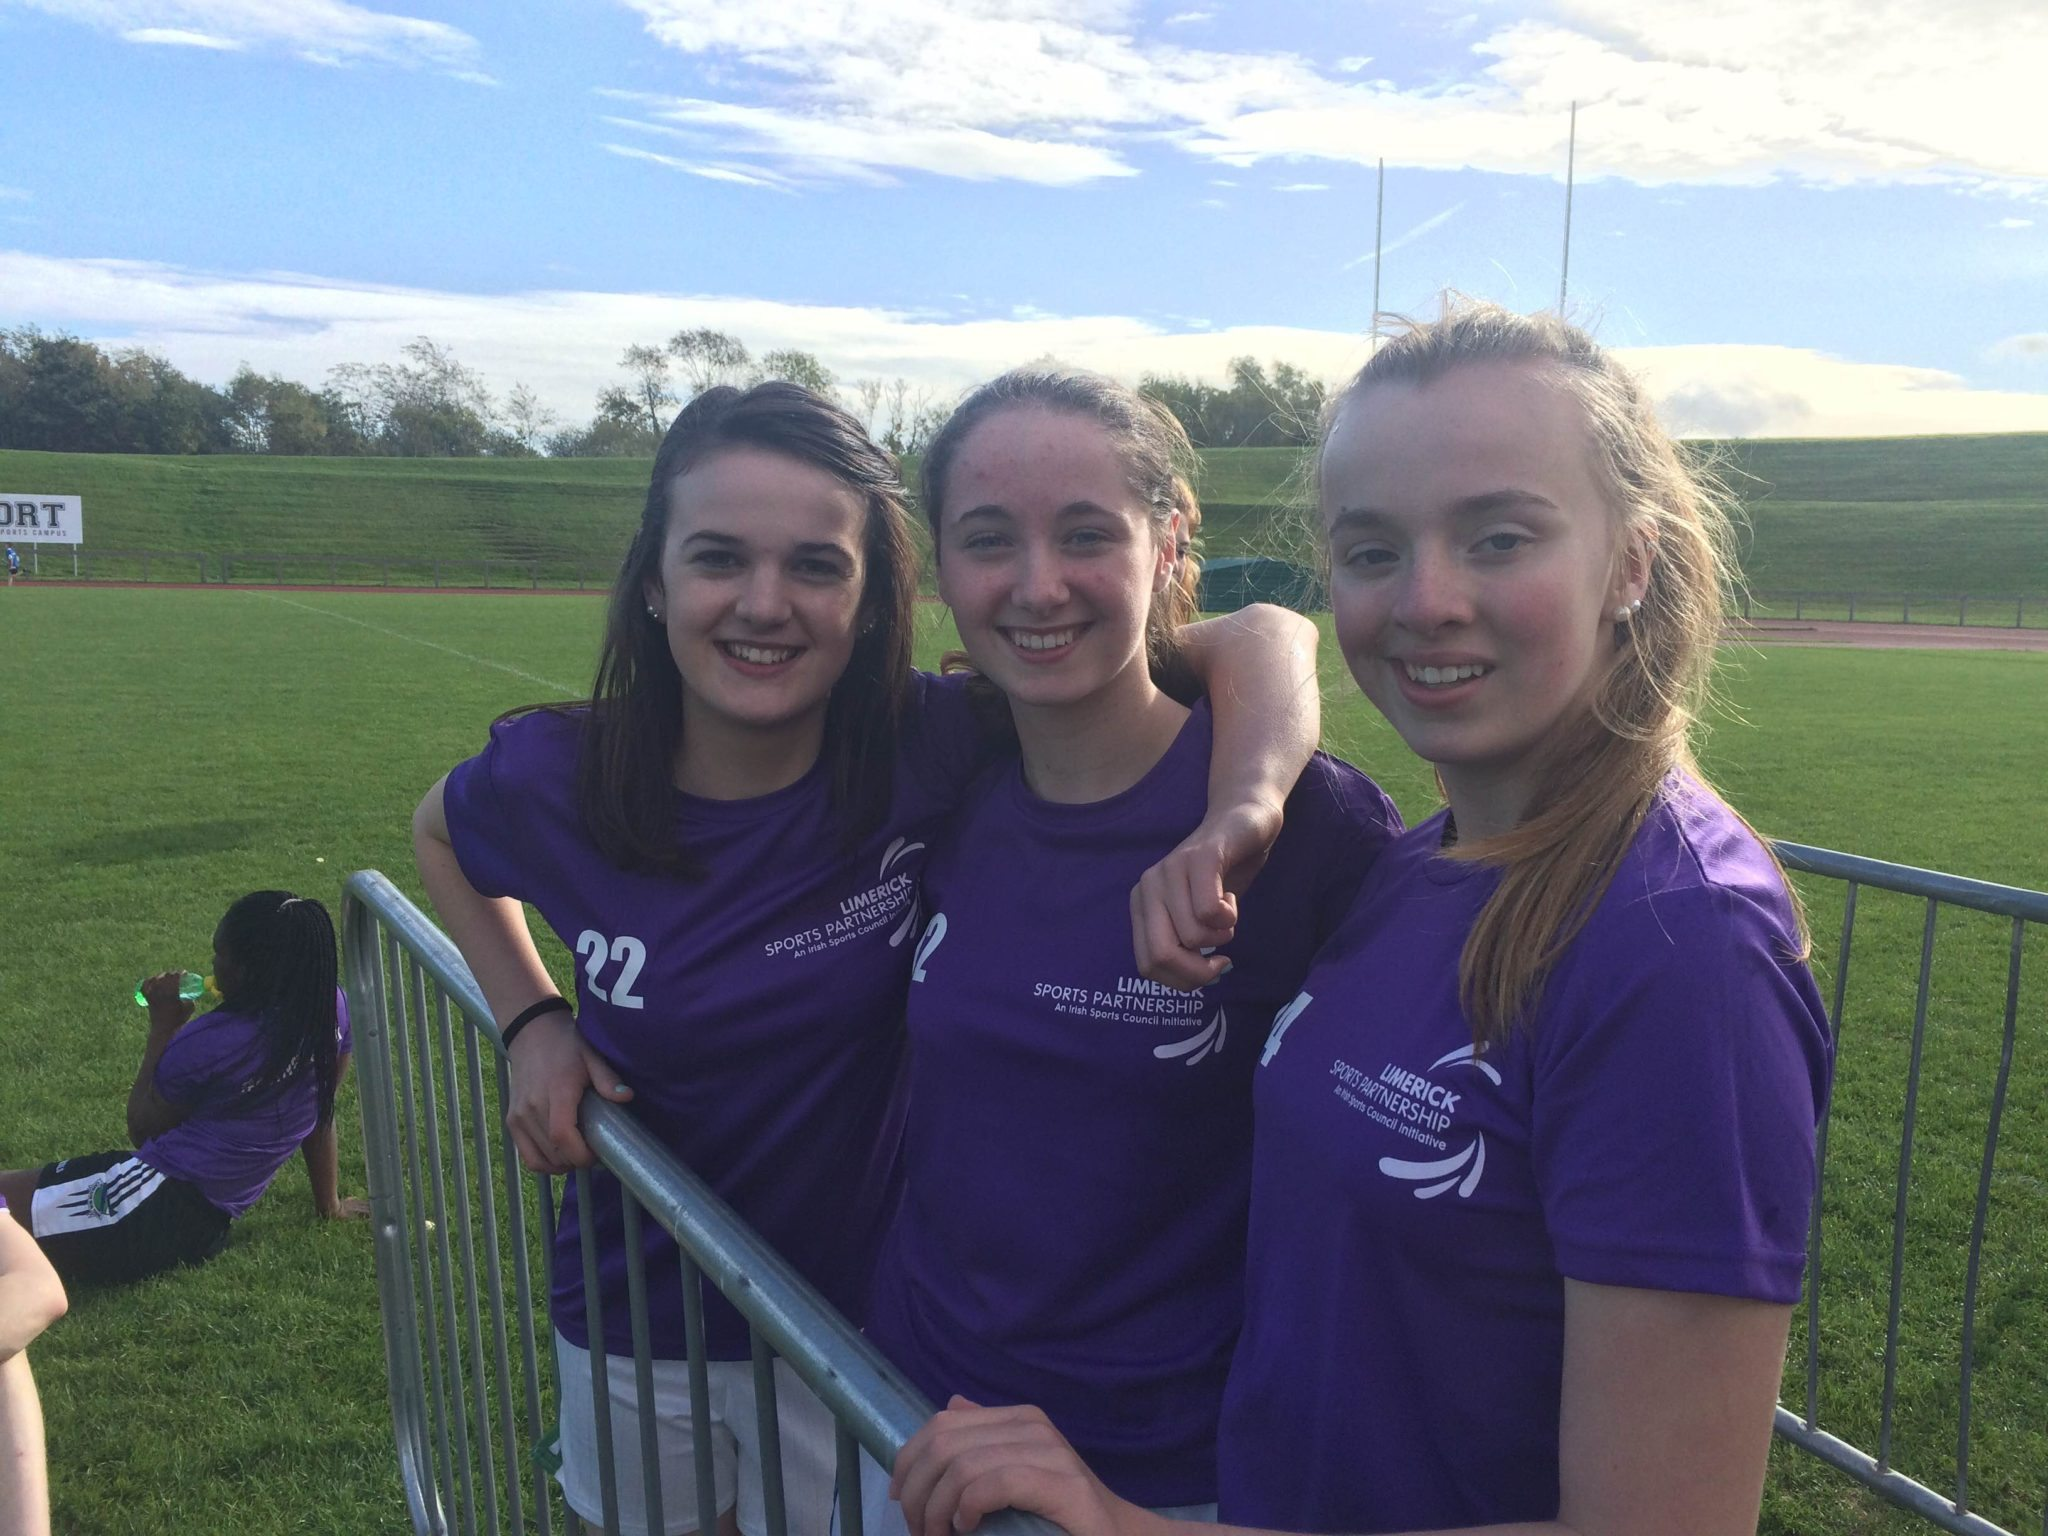 Oct 2015, University of Limerick: some of the desmond college second year girls who participated in the world marathon challenge